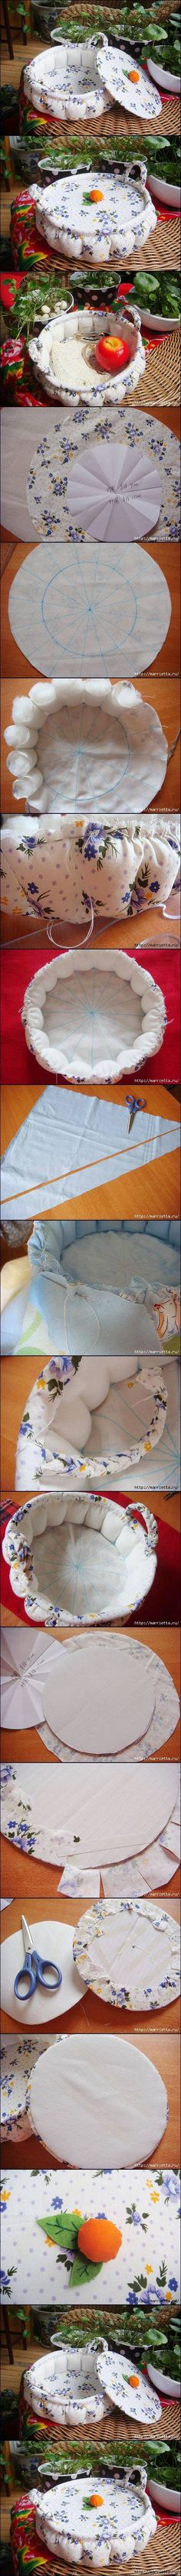 DIY Soft Fabric Needlework Basket DIY Projects